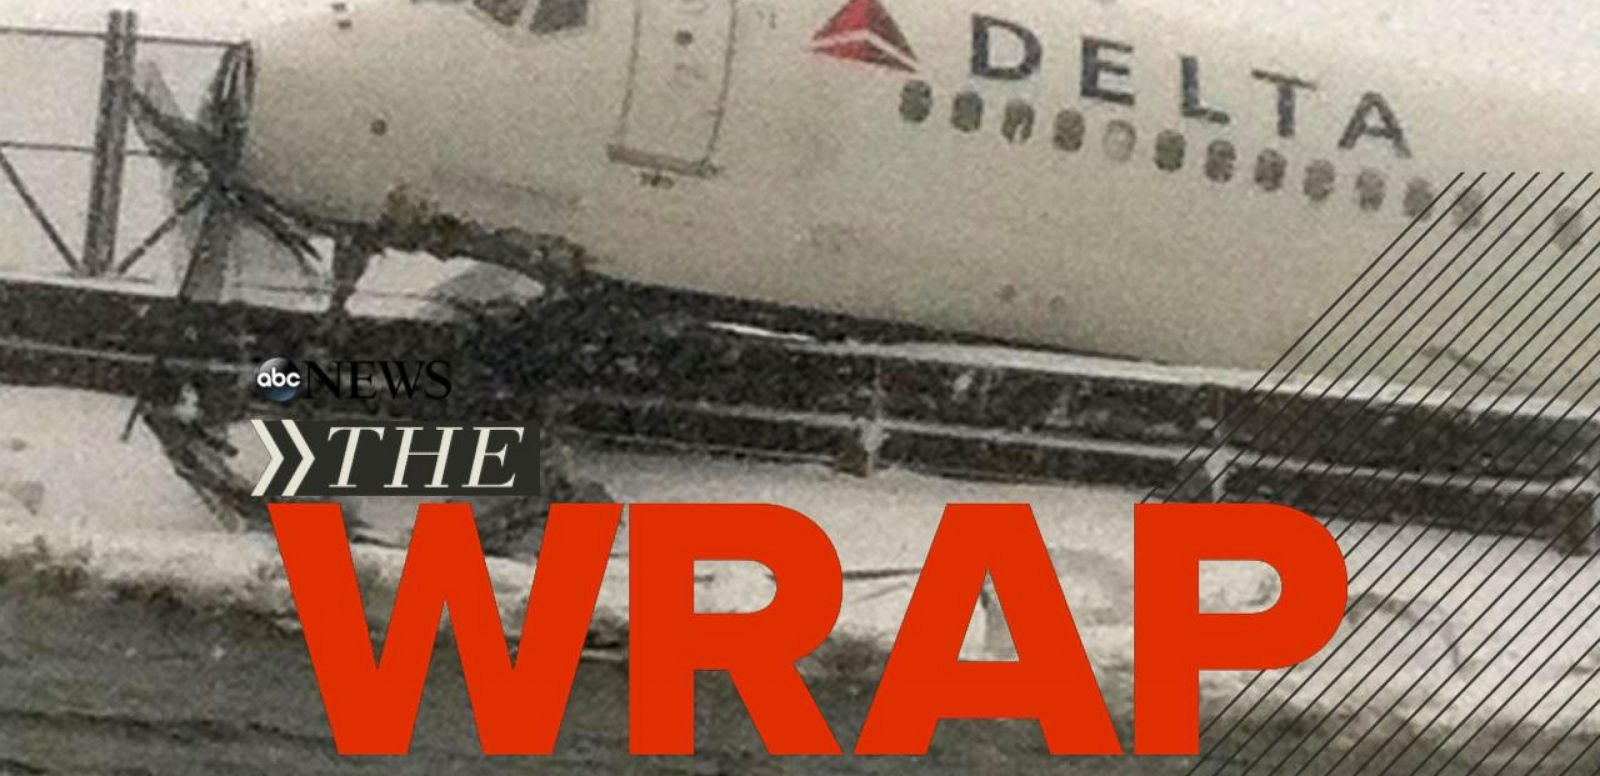 VIDEO: Delta Plane Skids Off Runway at LGA; Michael Brown's Family to File Civil Suit; Jury Hung in Jodi Arias Trial